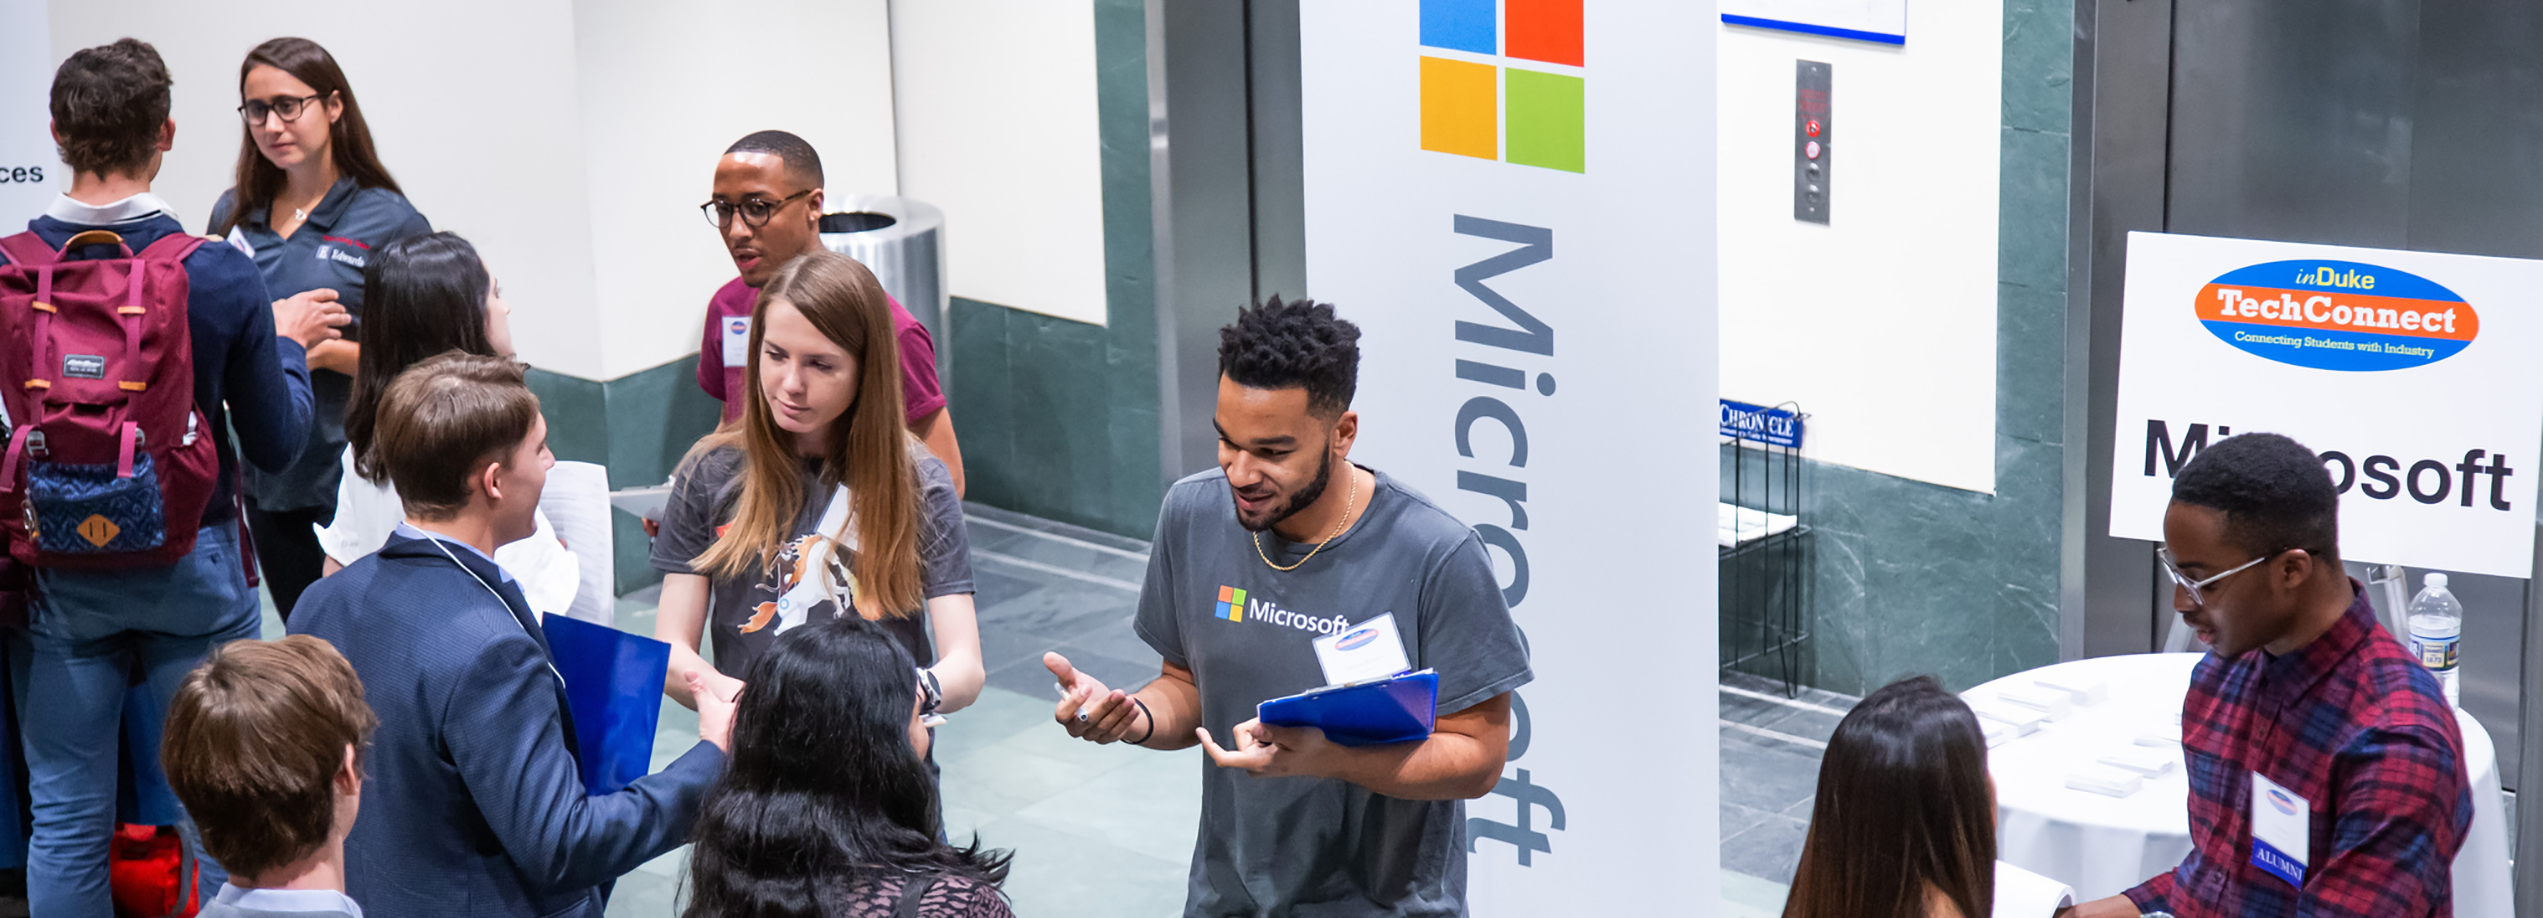 Microsoft at Duke TechConnect 2019 January